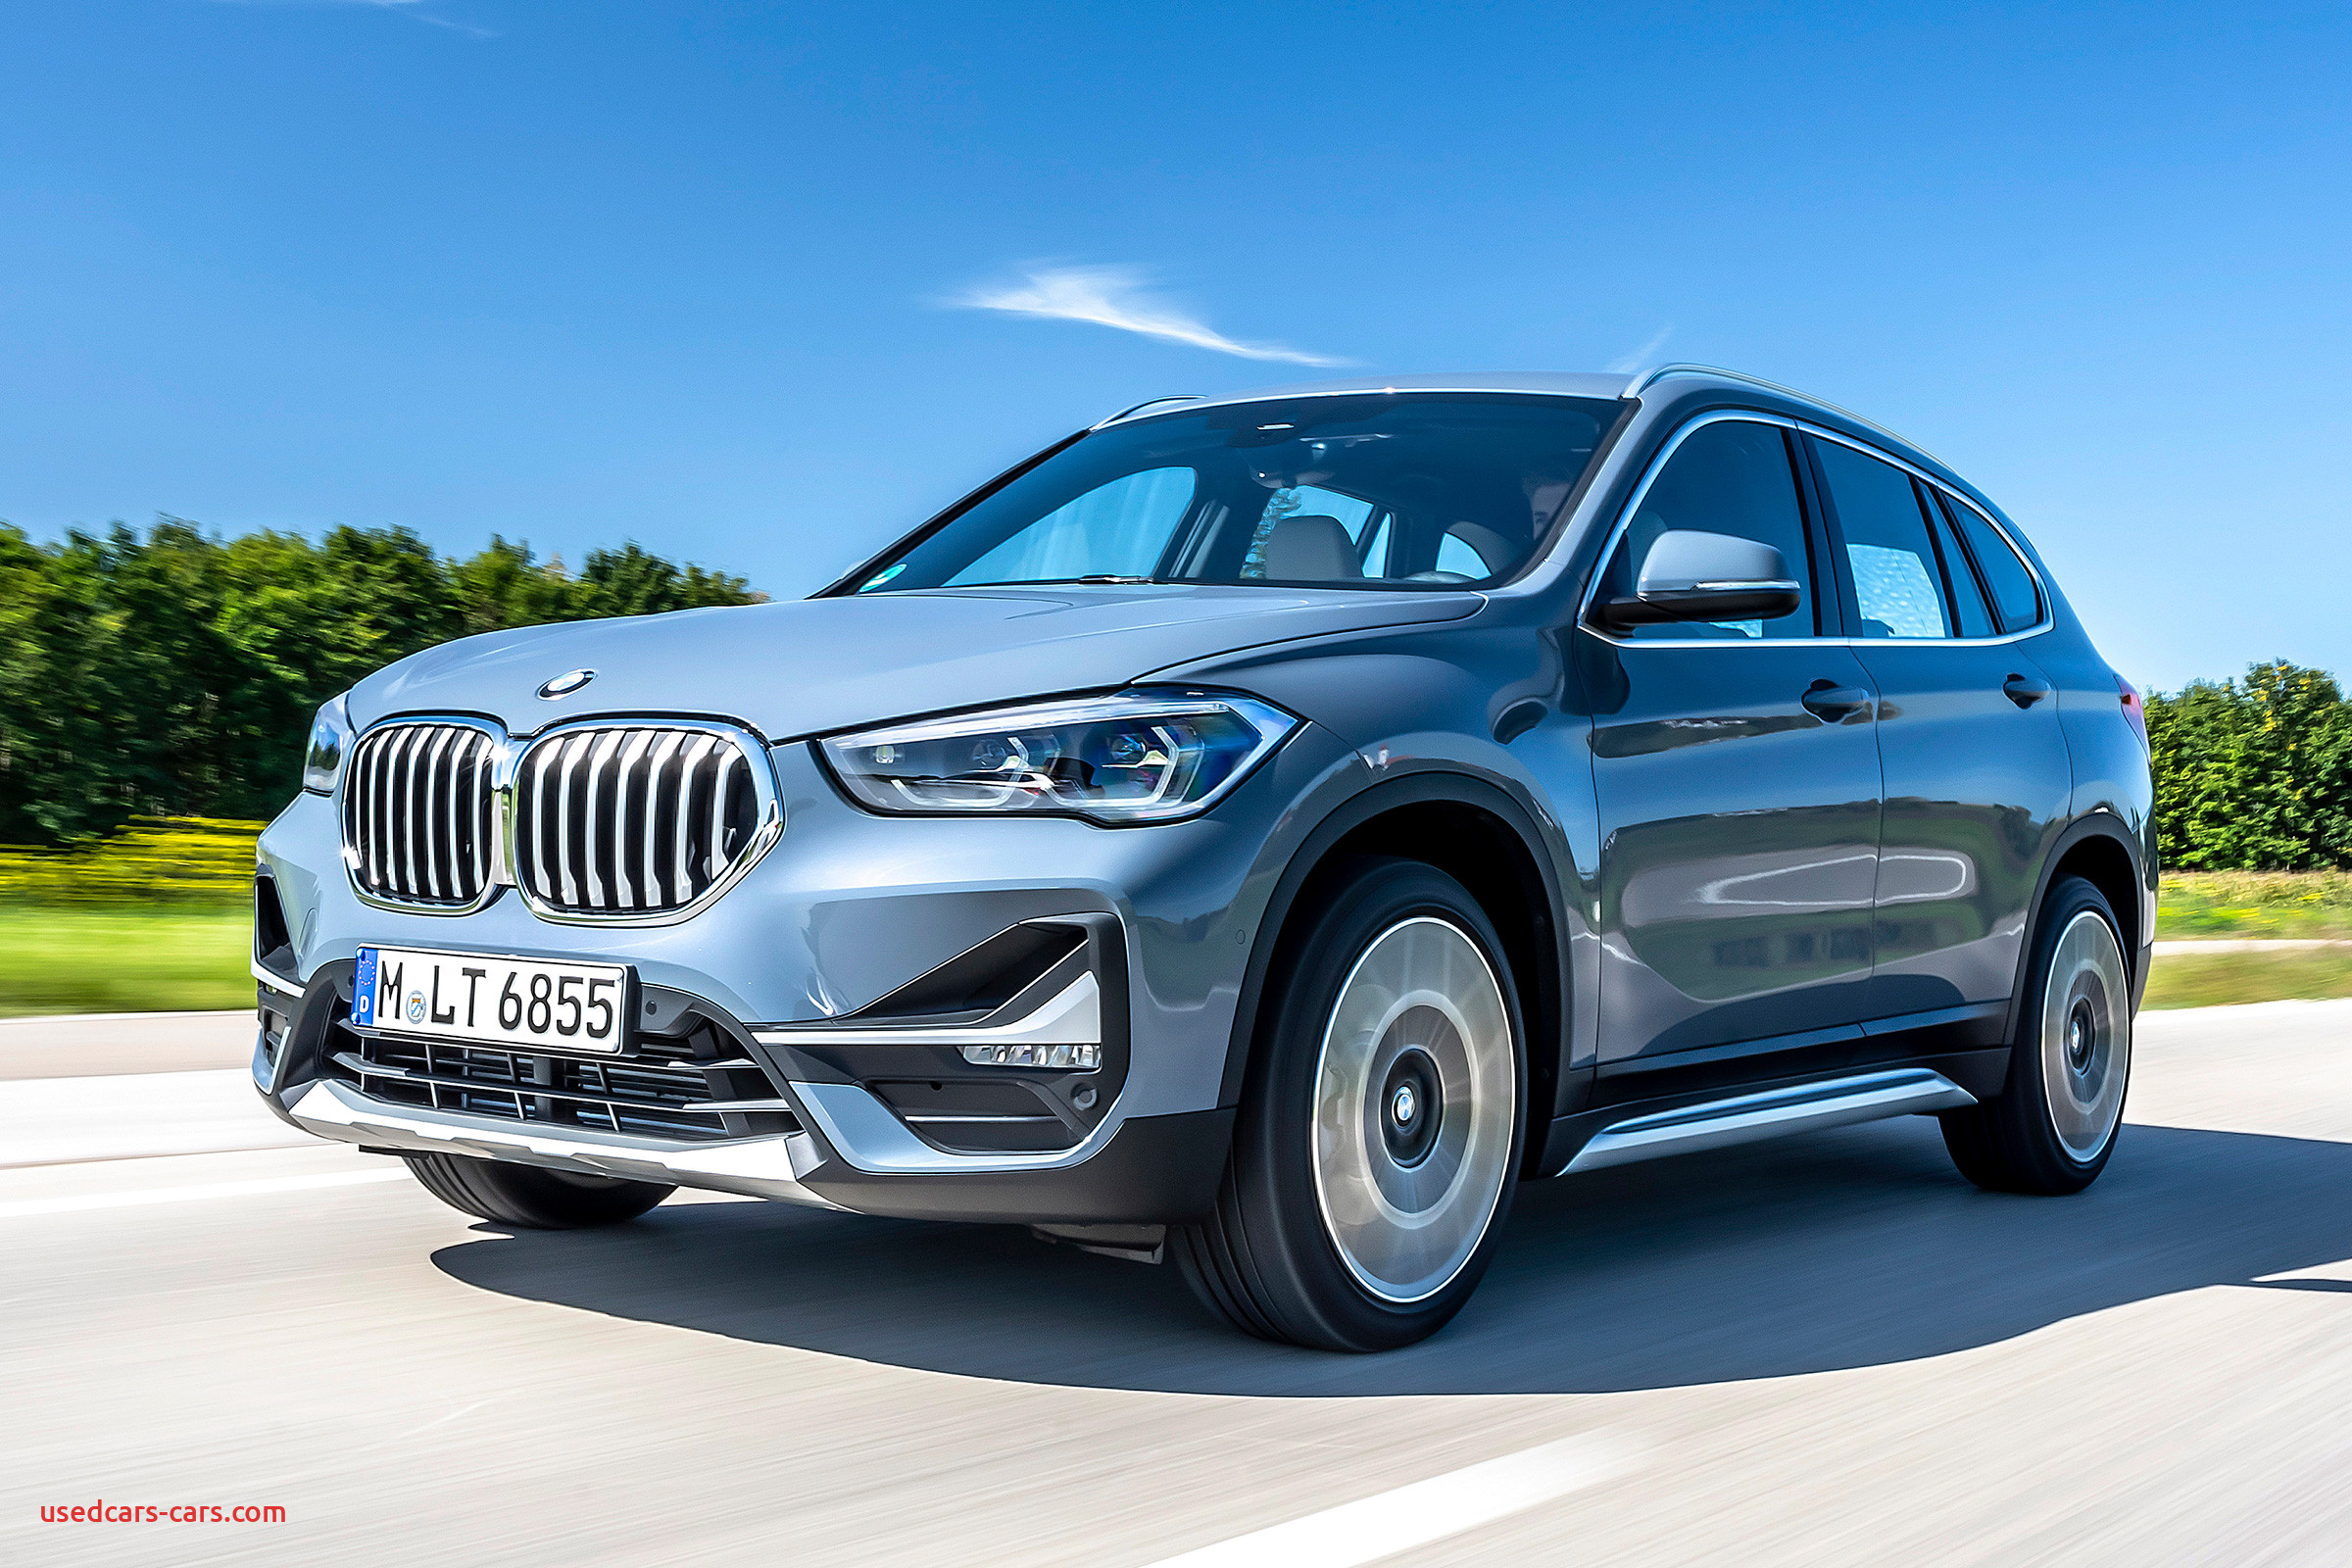 Top Rated Suv 2015 Inspirational Bmw X1 Review